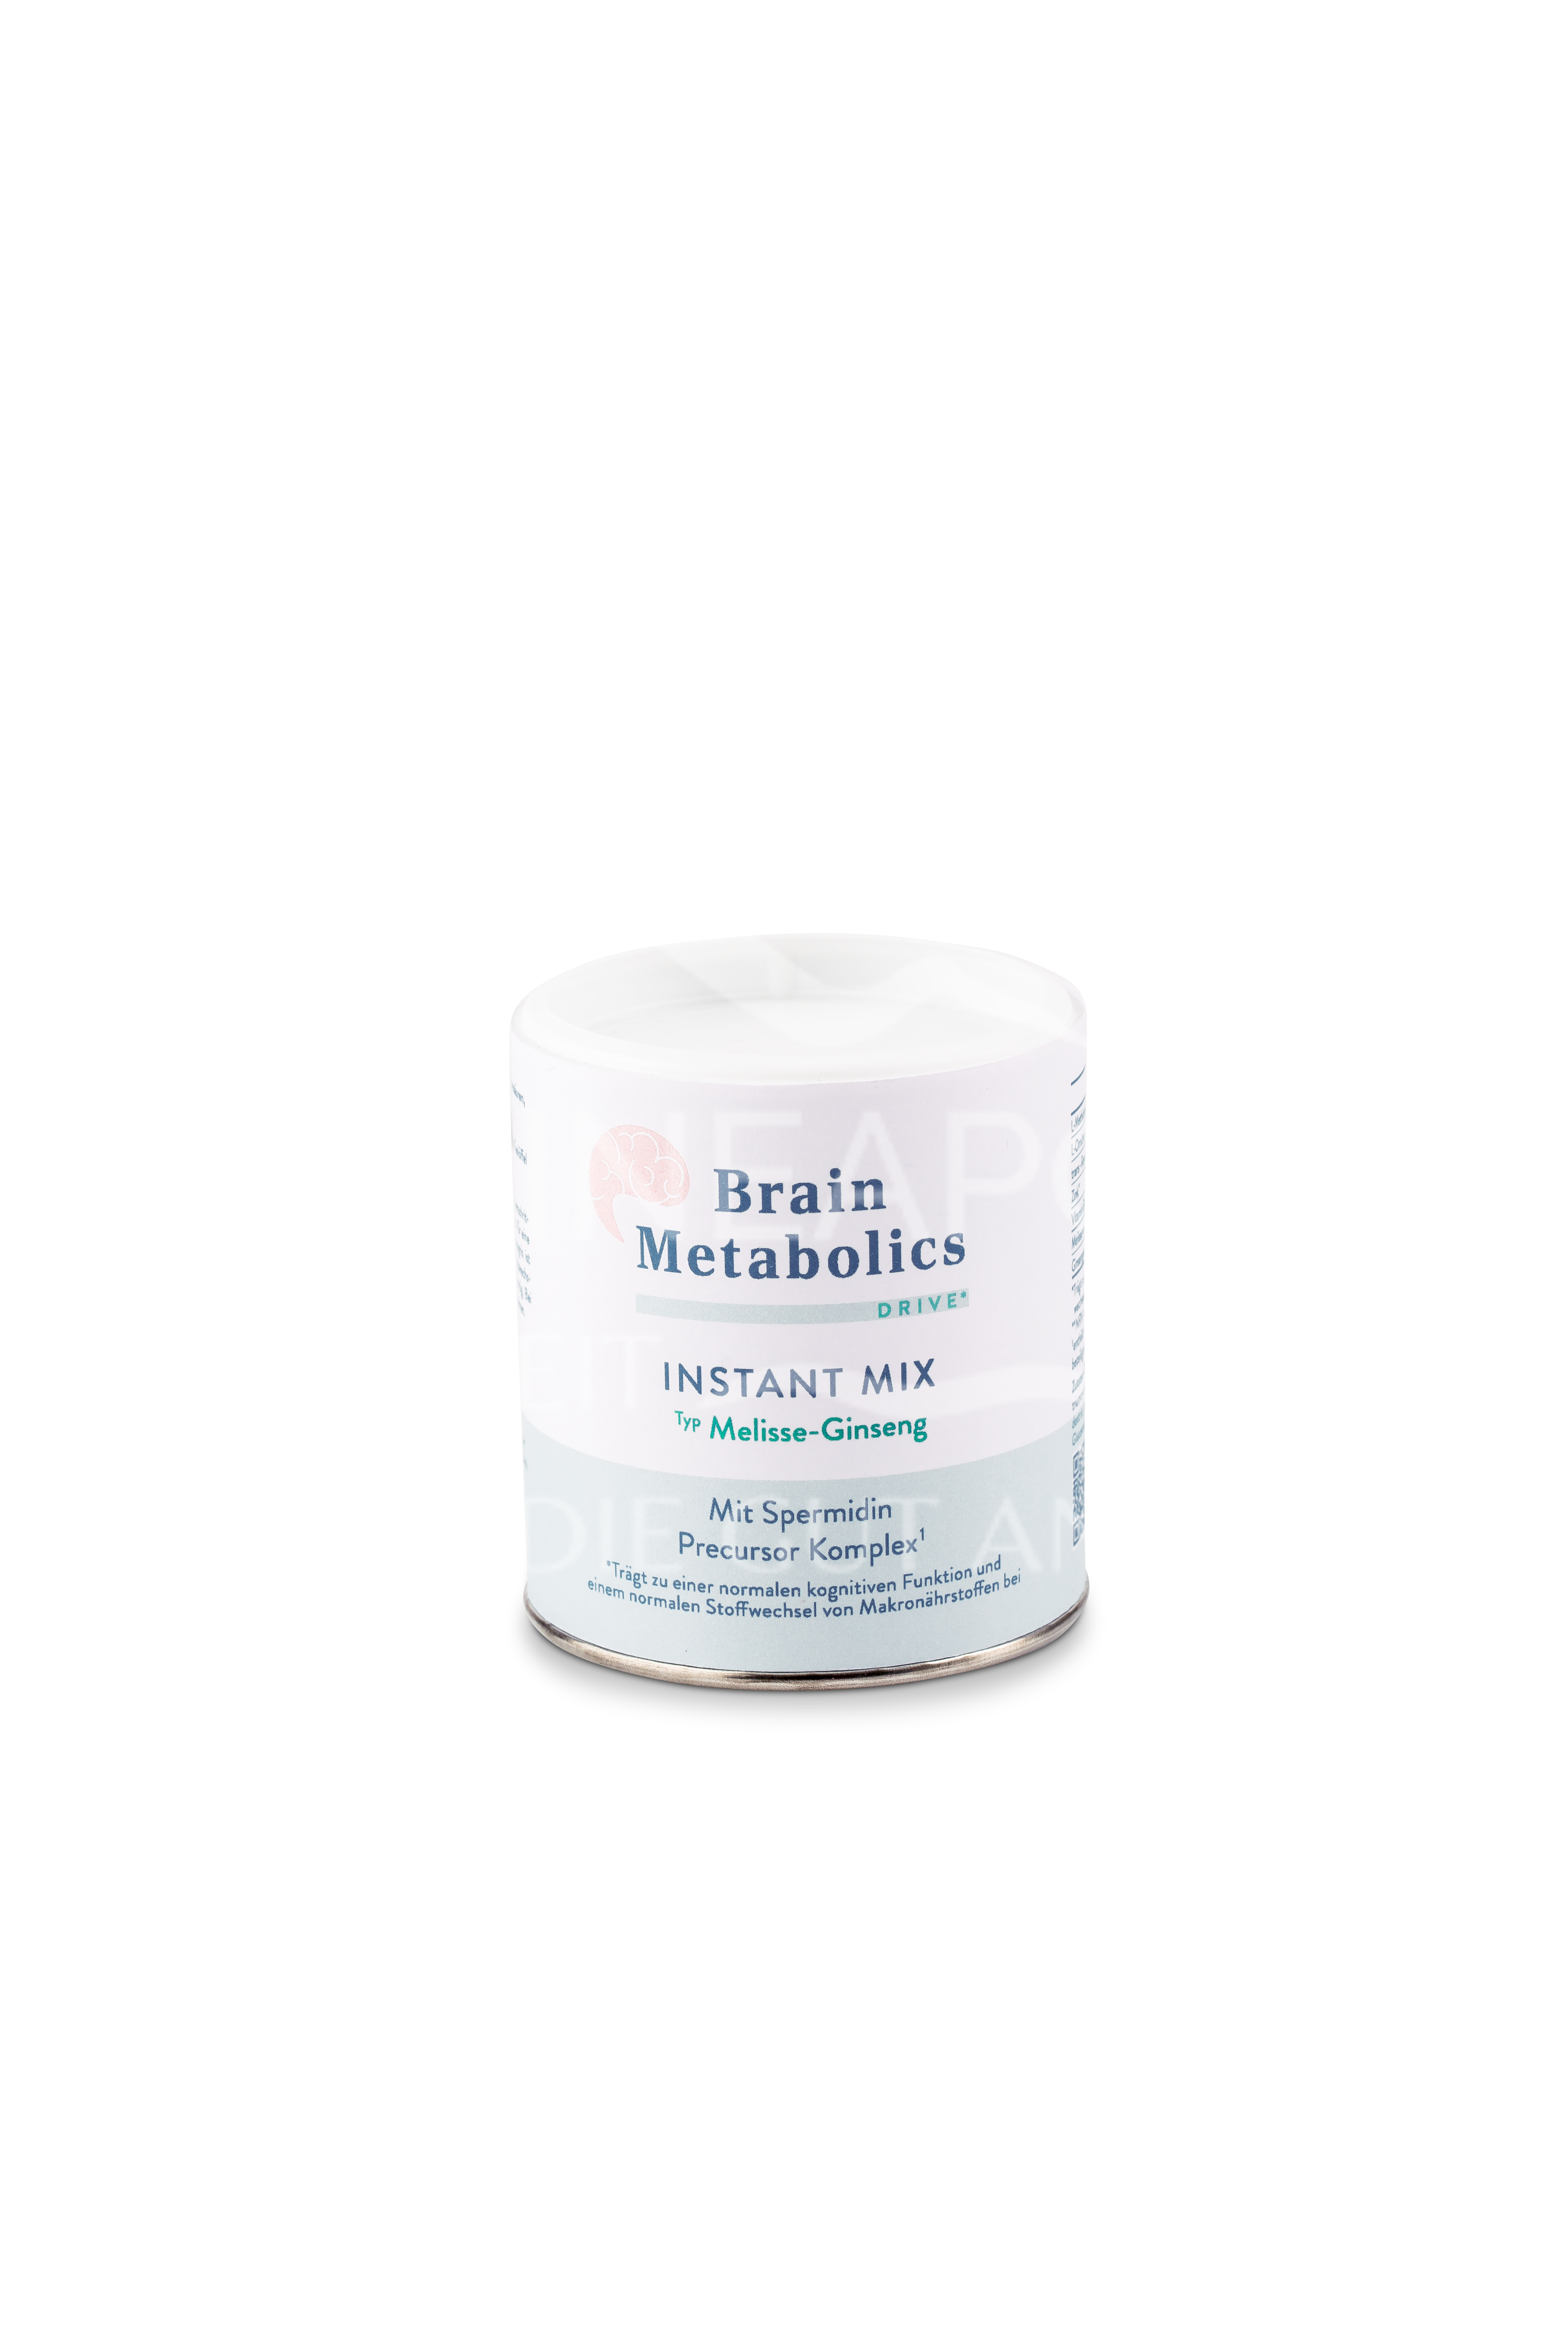 Brain Metabolics Drive Instant Mix Typ Melisse-Ginseng